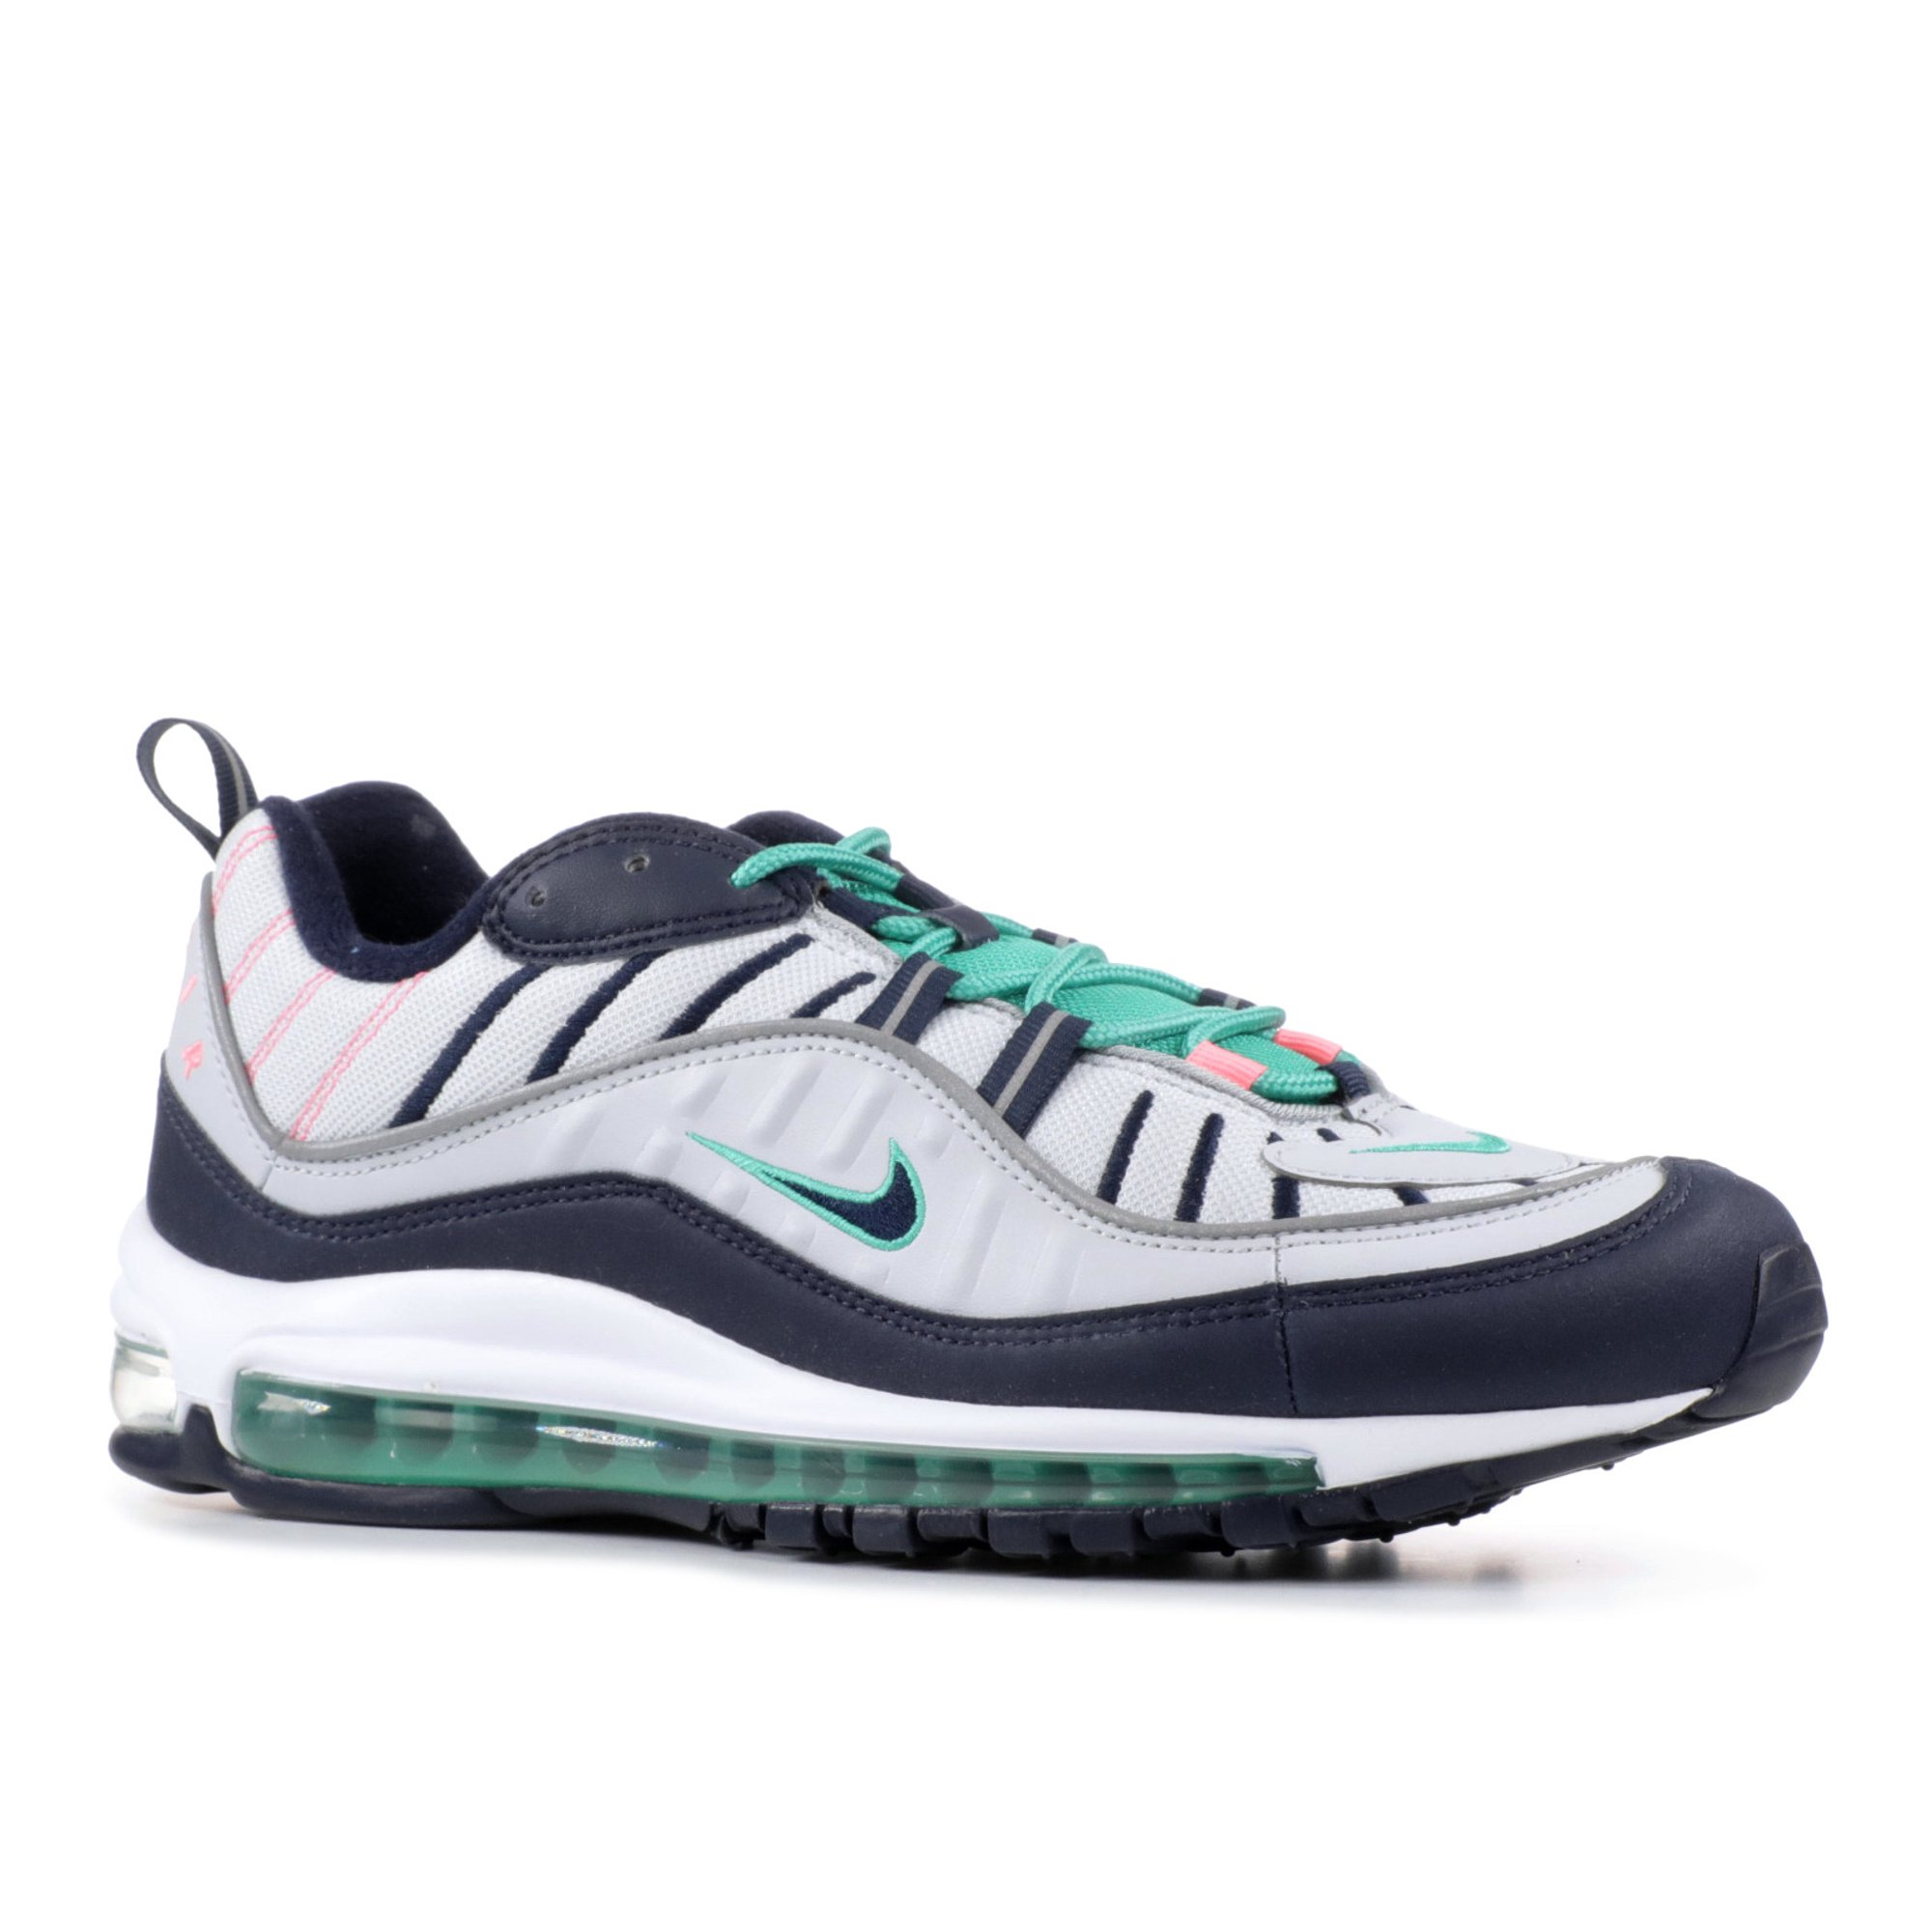 newest d533f a65c4 Nike - Men - Nike Air Max 98 - 640744-005 - Size 12.5